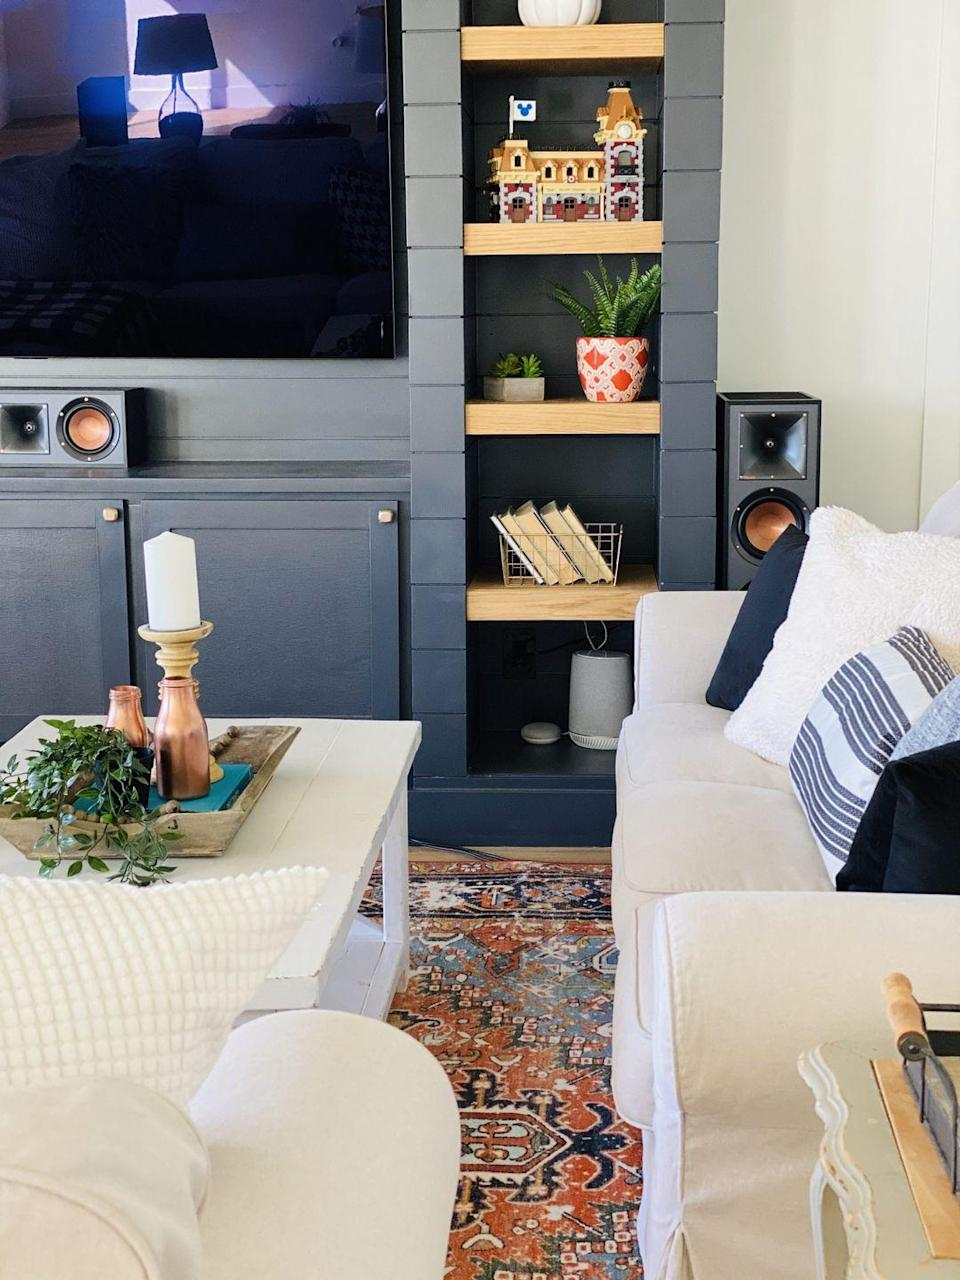 """<p>A built-in shiplap media unit? Yes, please! This stunning piece serves as the focal point of this modern media room, and offers plenty of shelf space for decor and books. </p><p><strong>See more at <a href=""""https://www.honeybearlane.com/2020/10/modern-finished-basement-living-room-reveal.html"""" rel=""""nofollow noopener"""" target=""""_blank"""" data-ylk=""""slk:Honeybear Lane"""" class=""""link rapid-noclick-resp"""">Honeybear Lane</a>. </strong></p><p><a class=""""link rapid-noclick-resp"""" href=""""https://go.redirectingat.com?id=74968X1596630&url=https%3A%2F%2Fwww.walmart.com%2Fip%2FBetter-Homes-Gardens-White-Wood-Planter-with-20-Green-Yellow-Faux-Snake-Plant%2F627080921&sref=https%3A%2F%2Fwww.redbookmag.com%2Fhome%2Fg36061437%2Fbasement-ideas%2F"""" rel=""""nofollow noopener"""" target=""""_blank"""" data-ylk=""""slk:SHOP FAUX PLANTS"""">SHOP FAUX PLANTS</a></p>"""